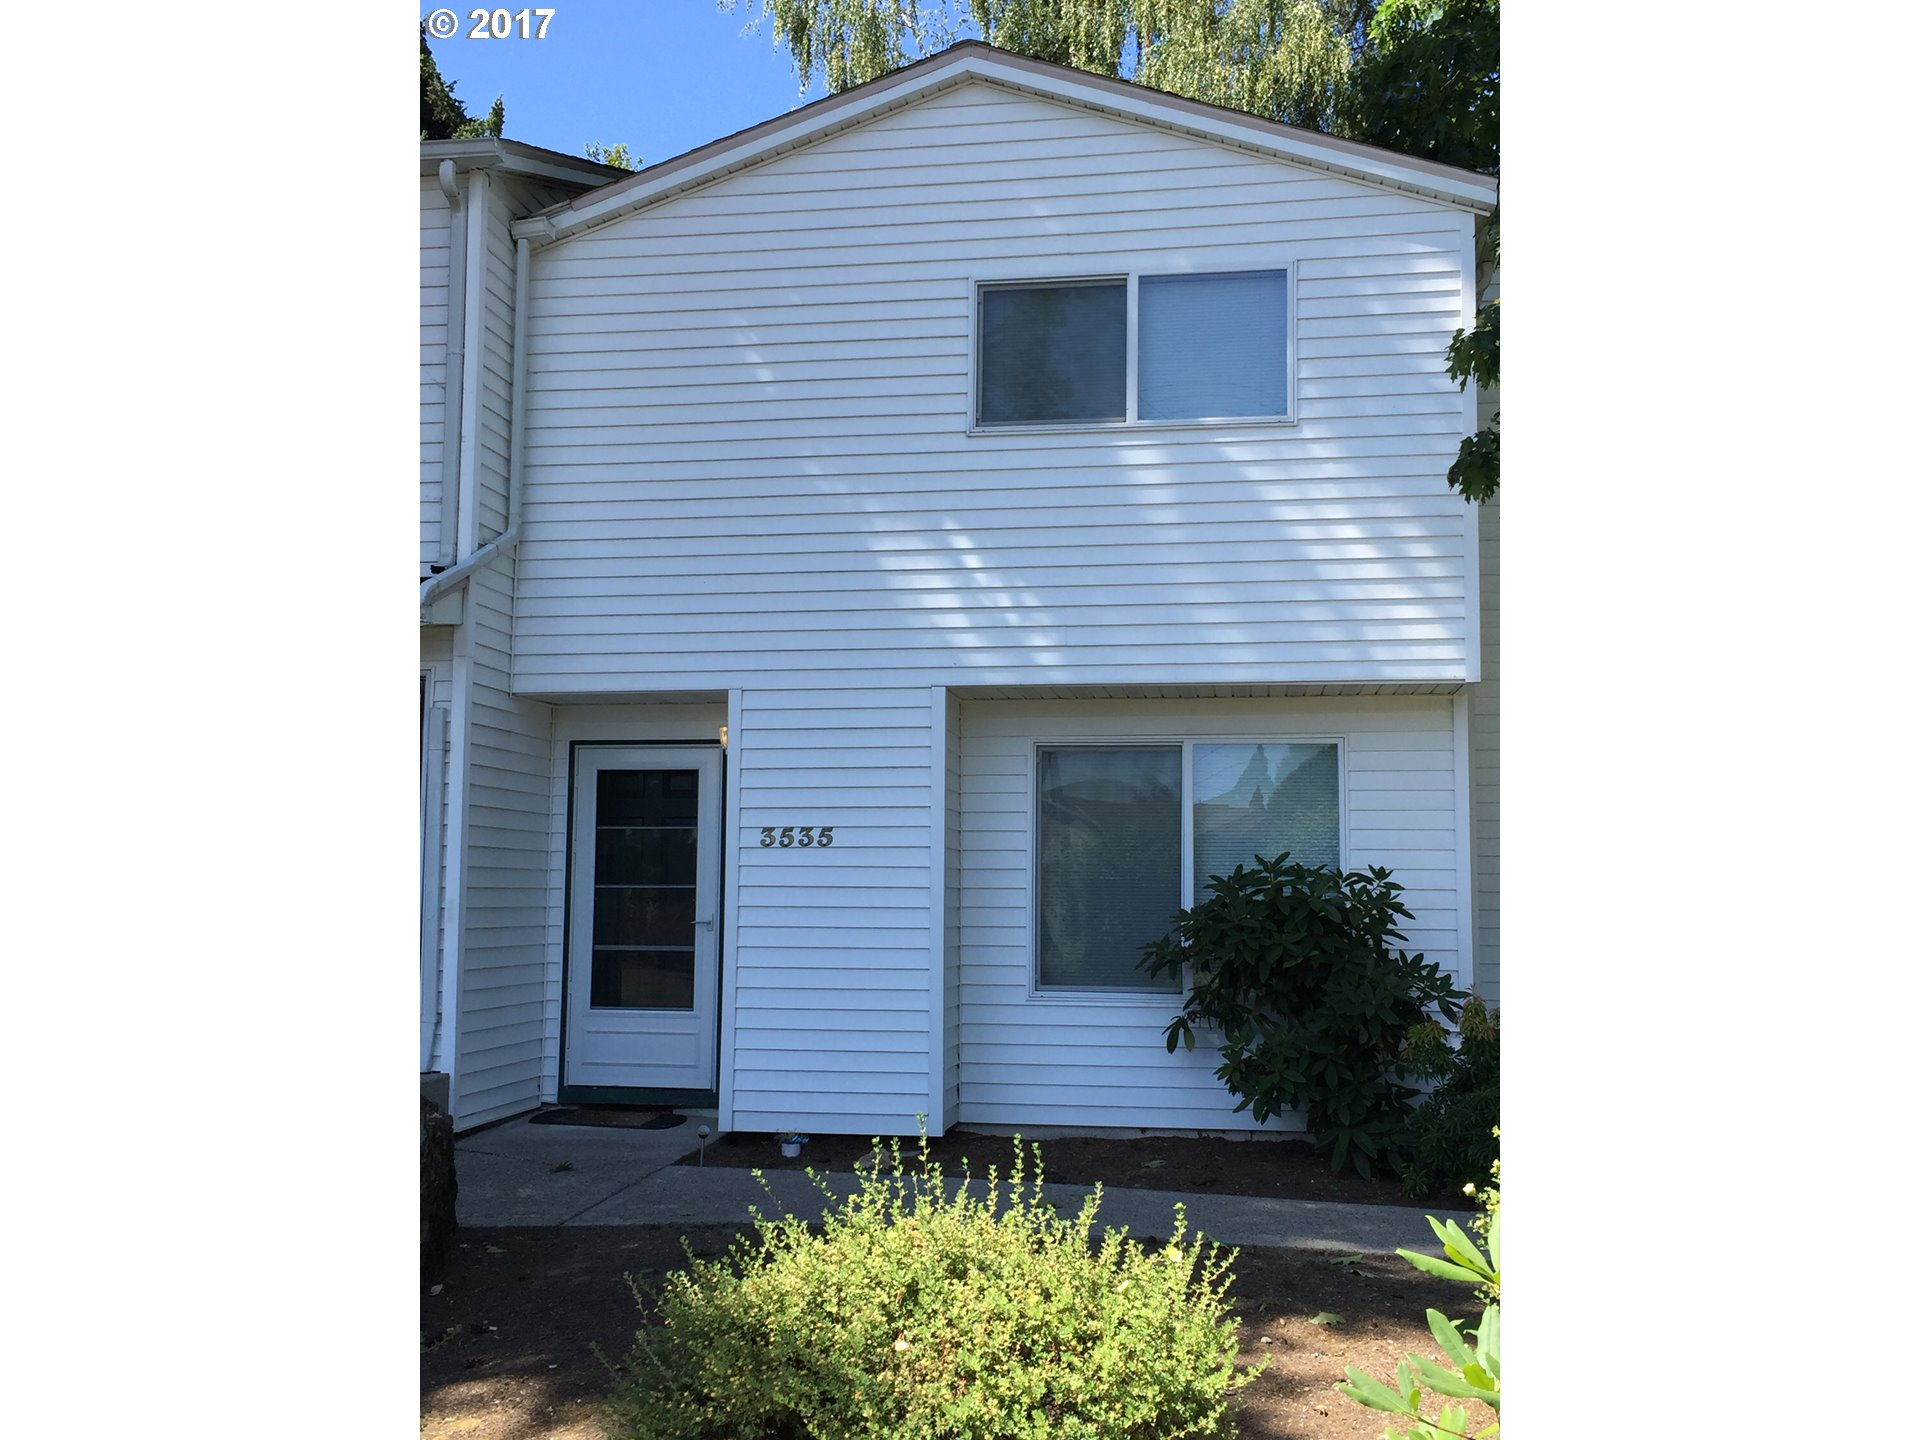 3535 NE 147TH AVE, Portland, OR 97230